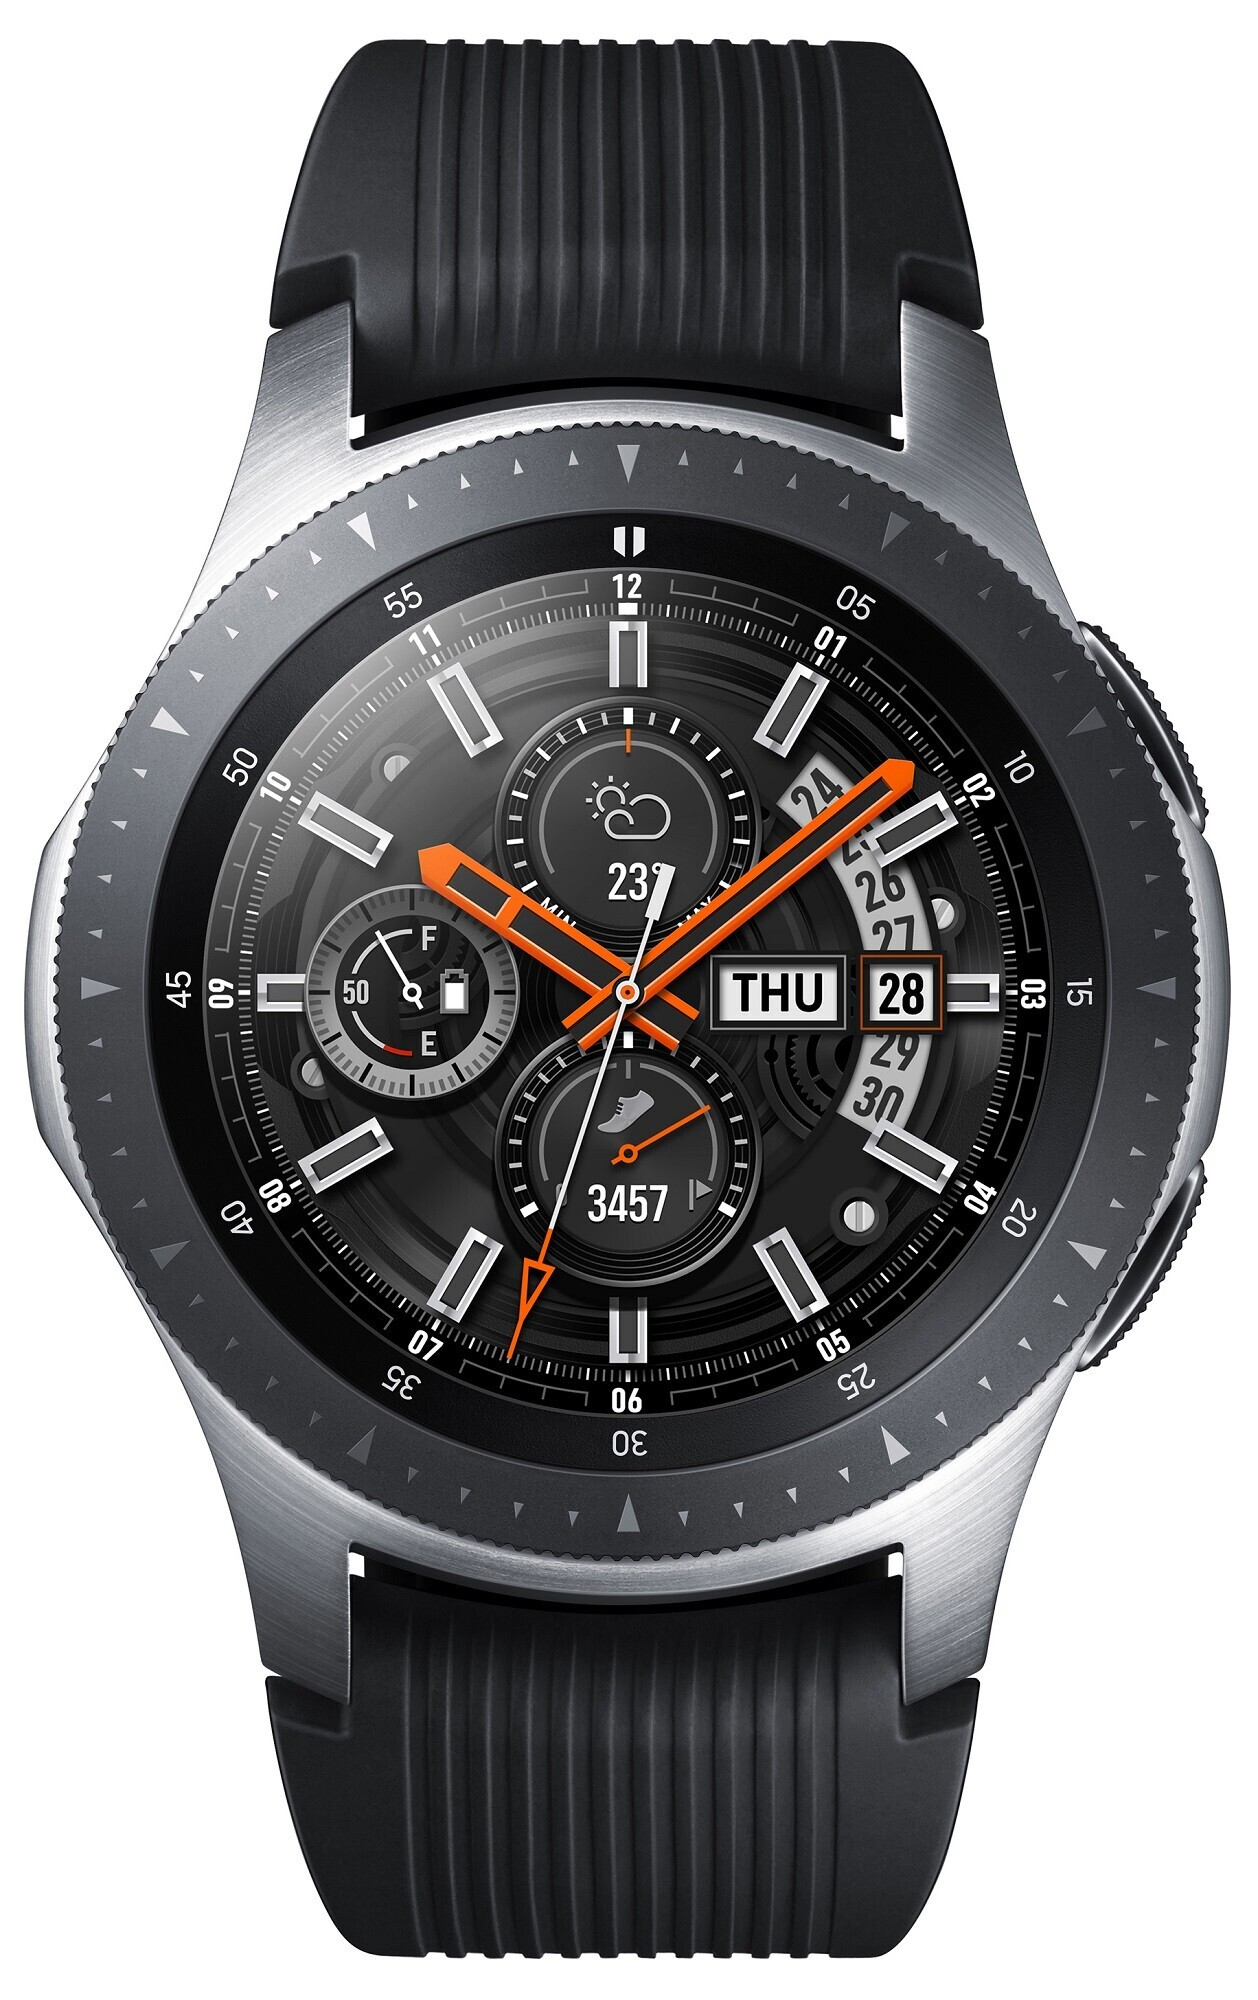 Фото - смарт-годинник Samsung Galaxy Watch 46mm Silver (SM-R800NZSASEK) e77ac9f629a7a